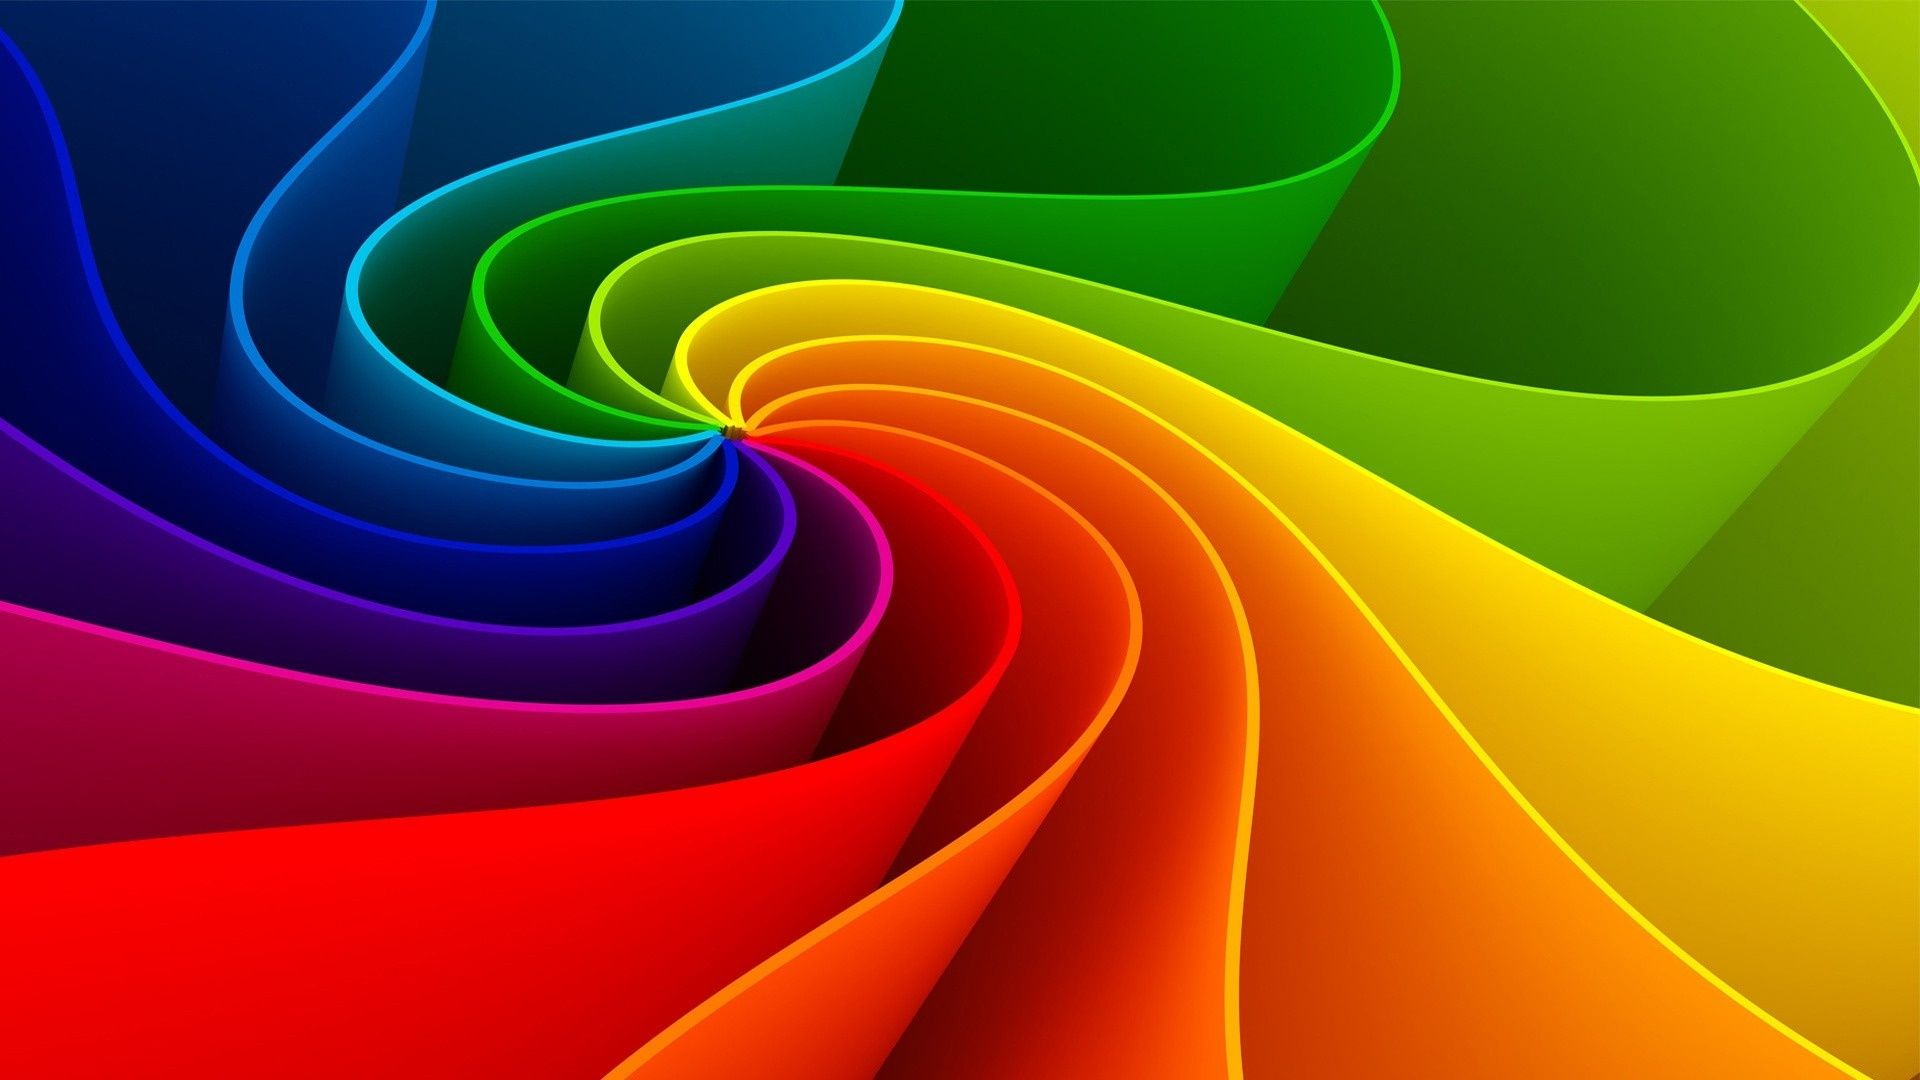 Rainbow Abstract Wallpapers Top Free Rainbow Abstract Backgrounds Wallpaperaccess